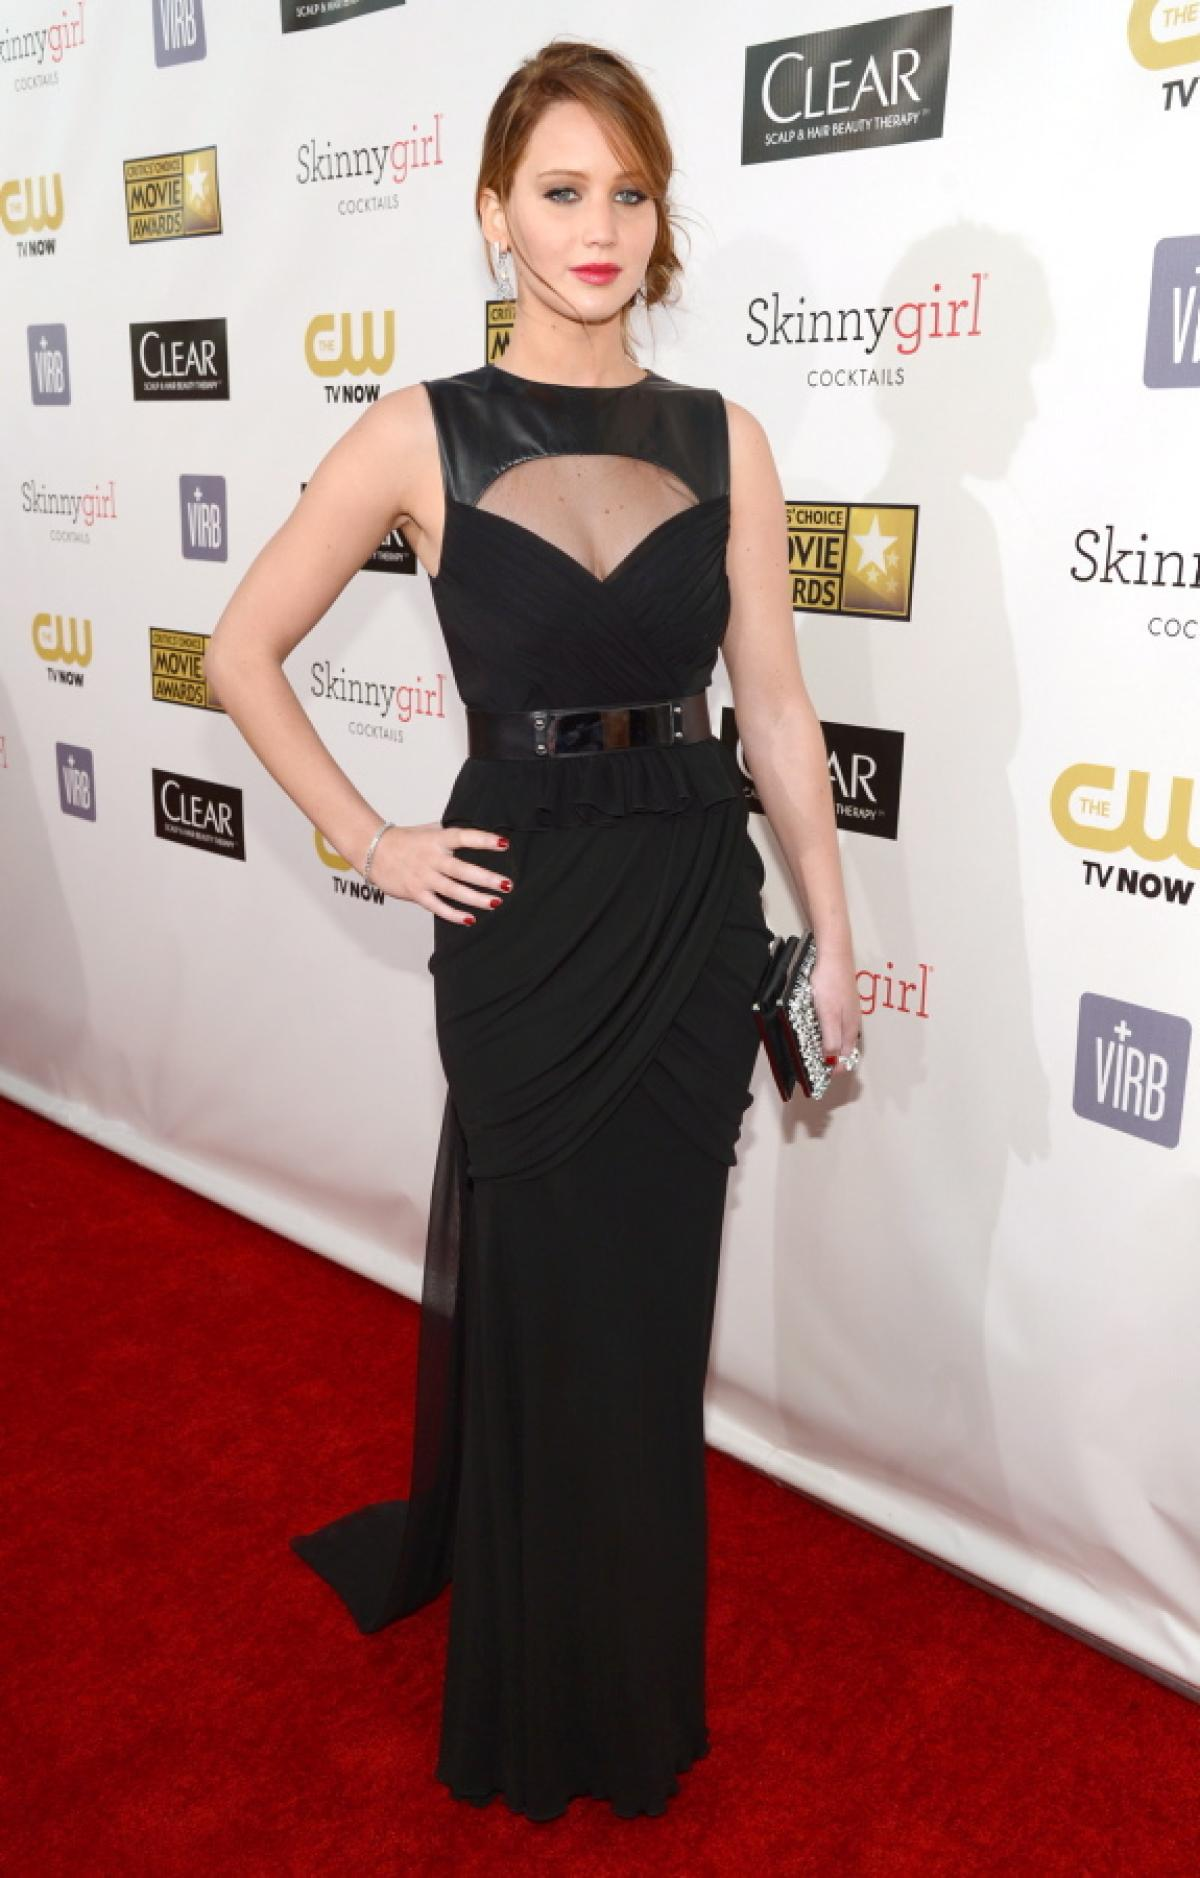 In a black sleeveless Prabal Gurung column dress with leather accent at The Critics-Choice Movie Awards Jan 10 ,2013